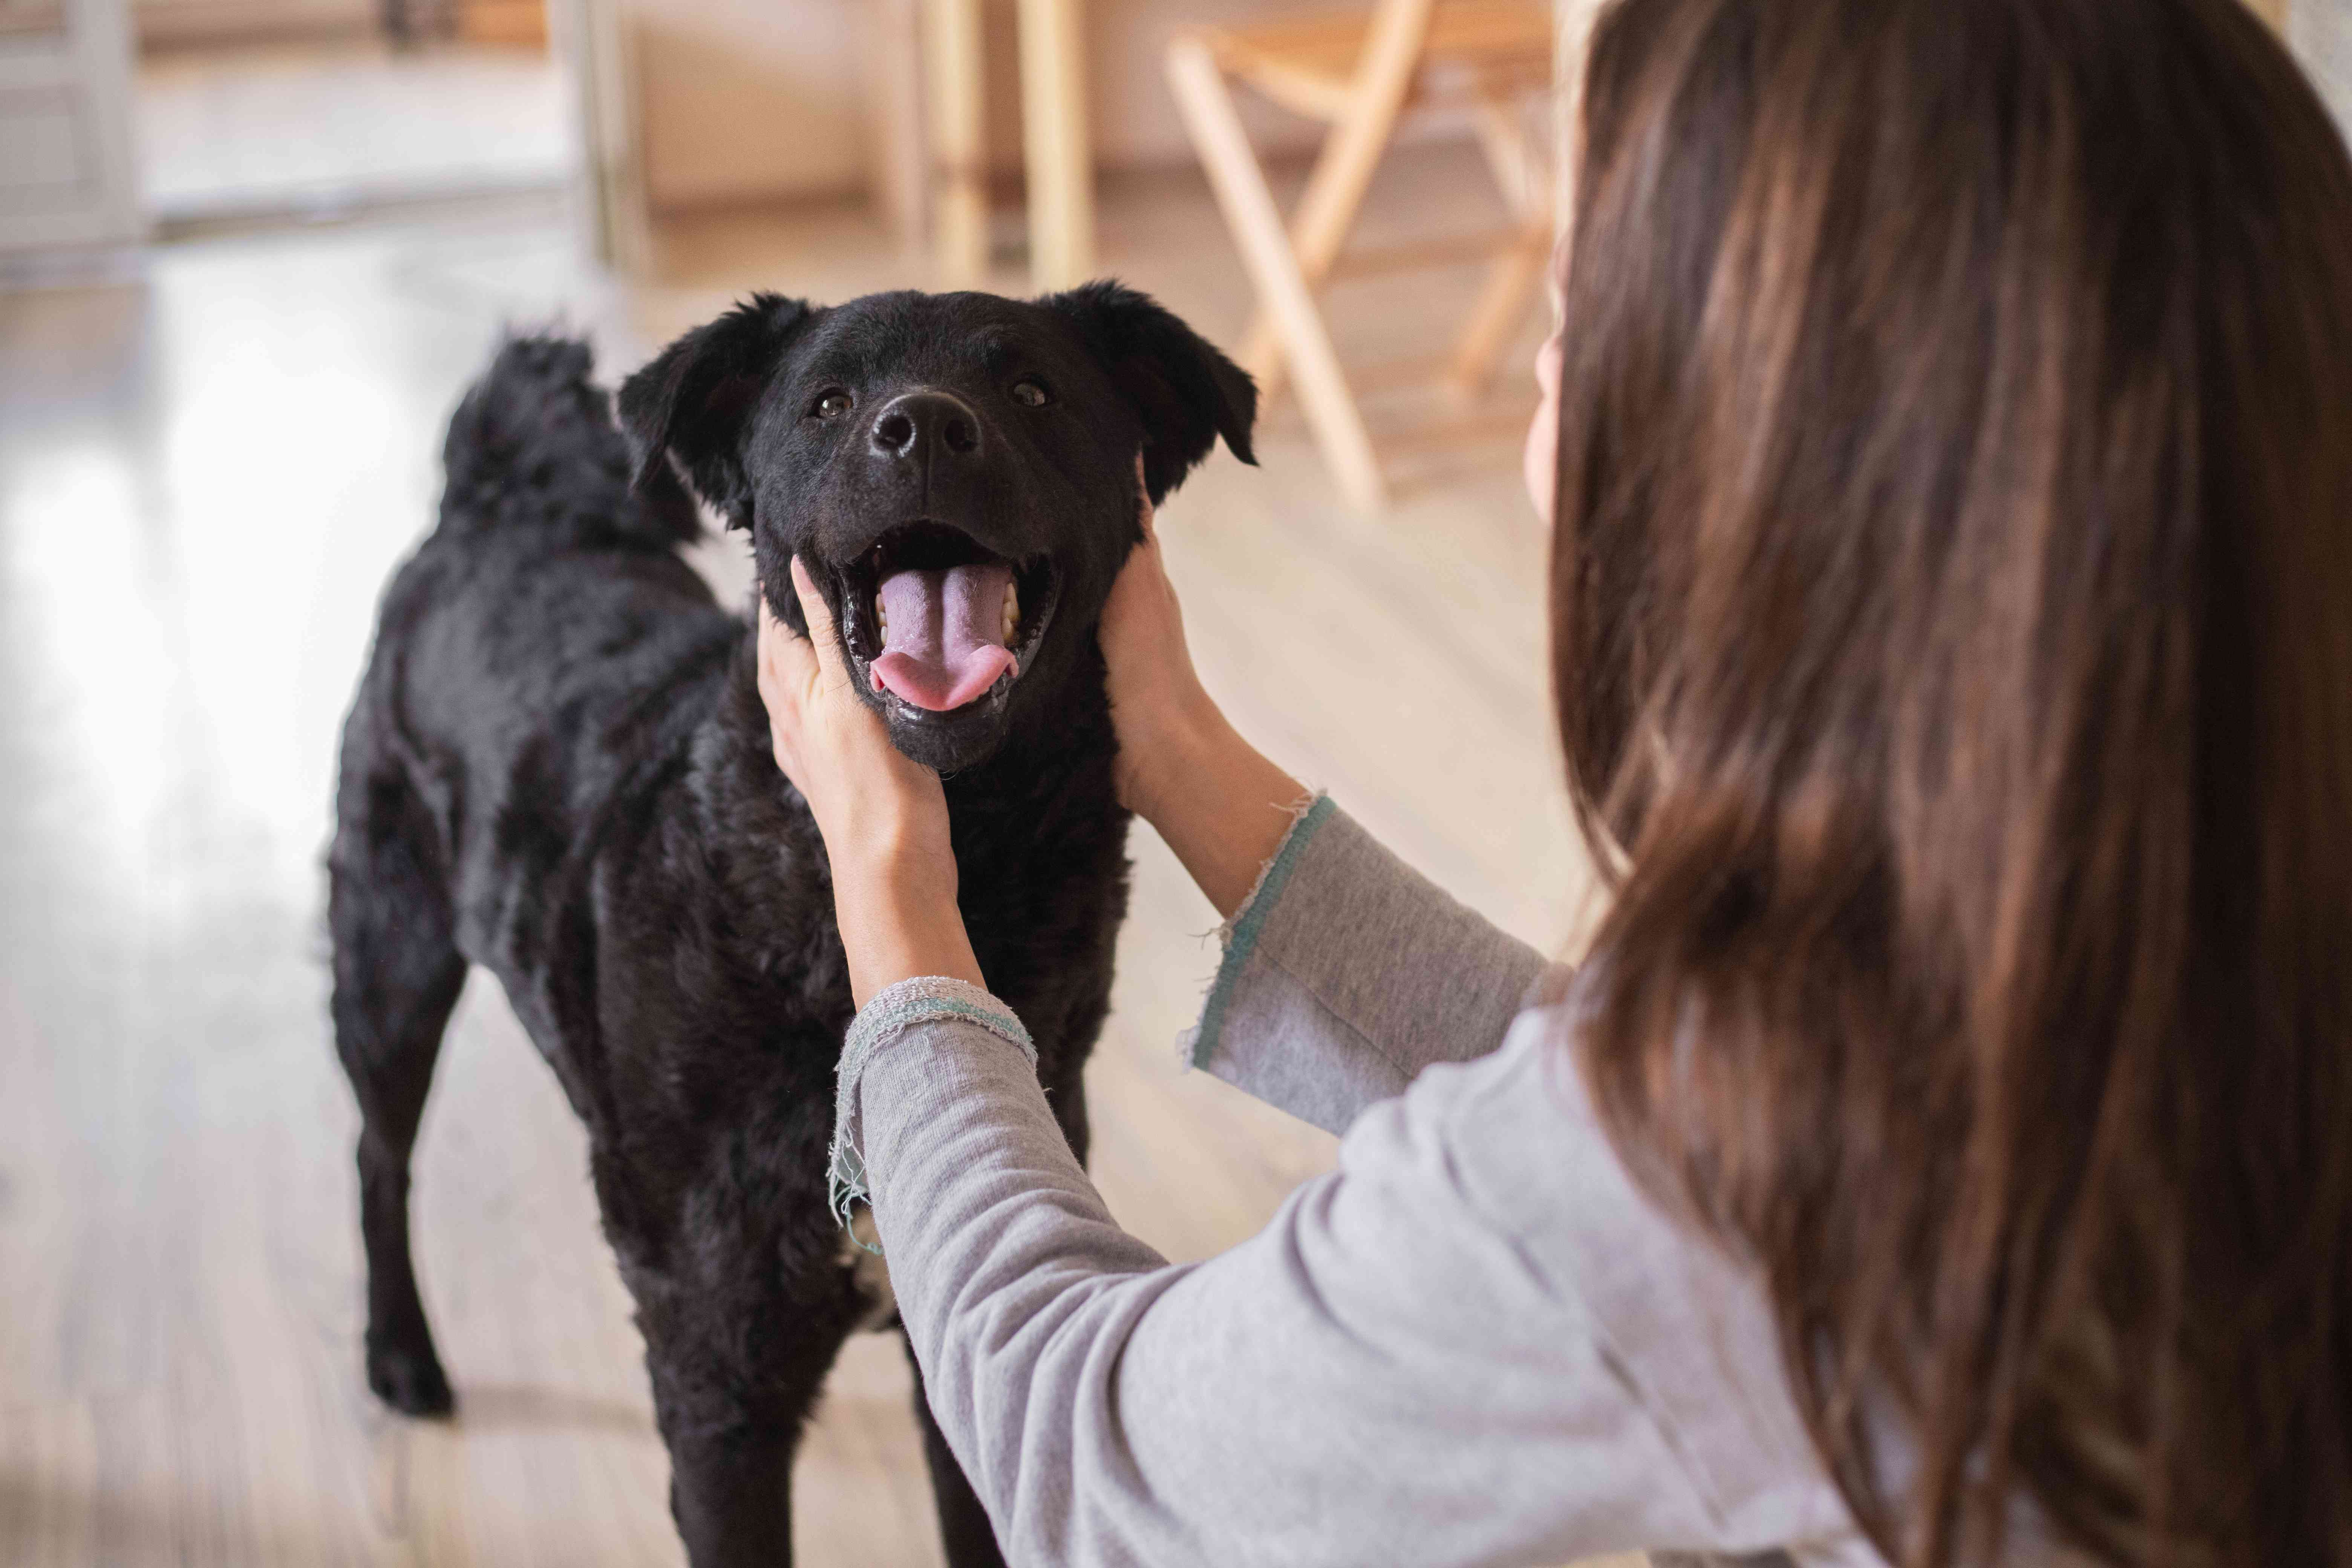 woman scratches dog's cheeks while dog opens mouth with tongue out